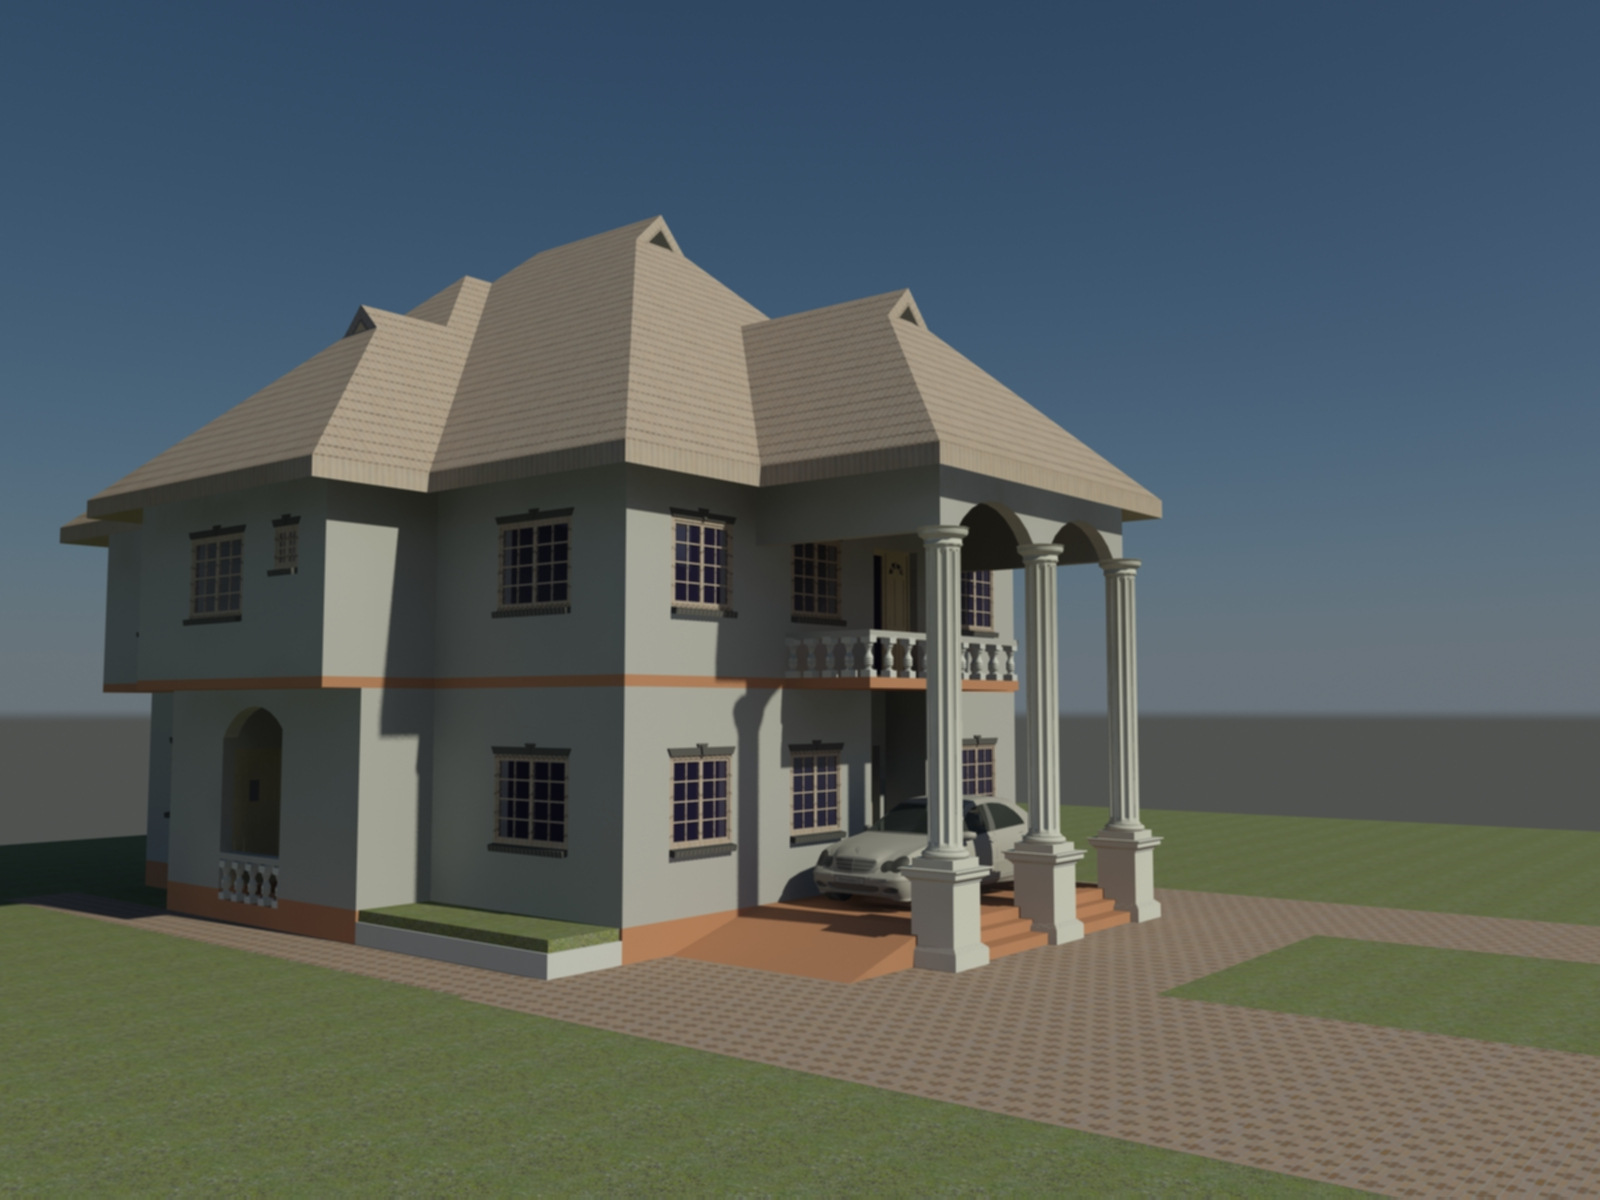 Adiatu oluwafemi models my 3d models both autocad and for Revit architecture modern house design 1